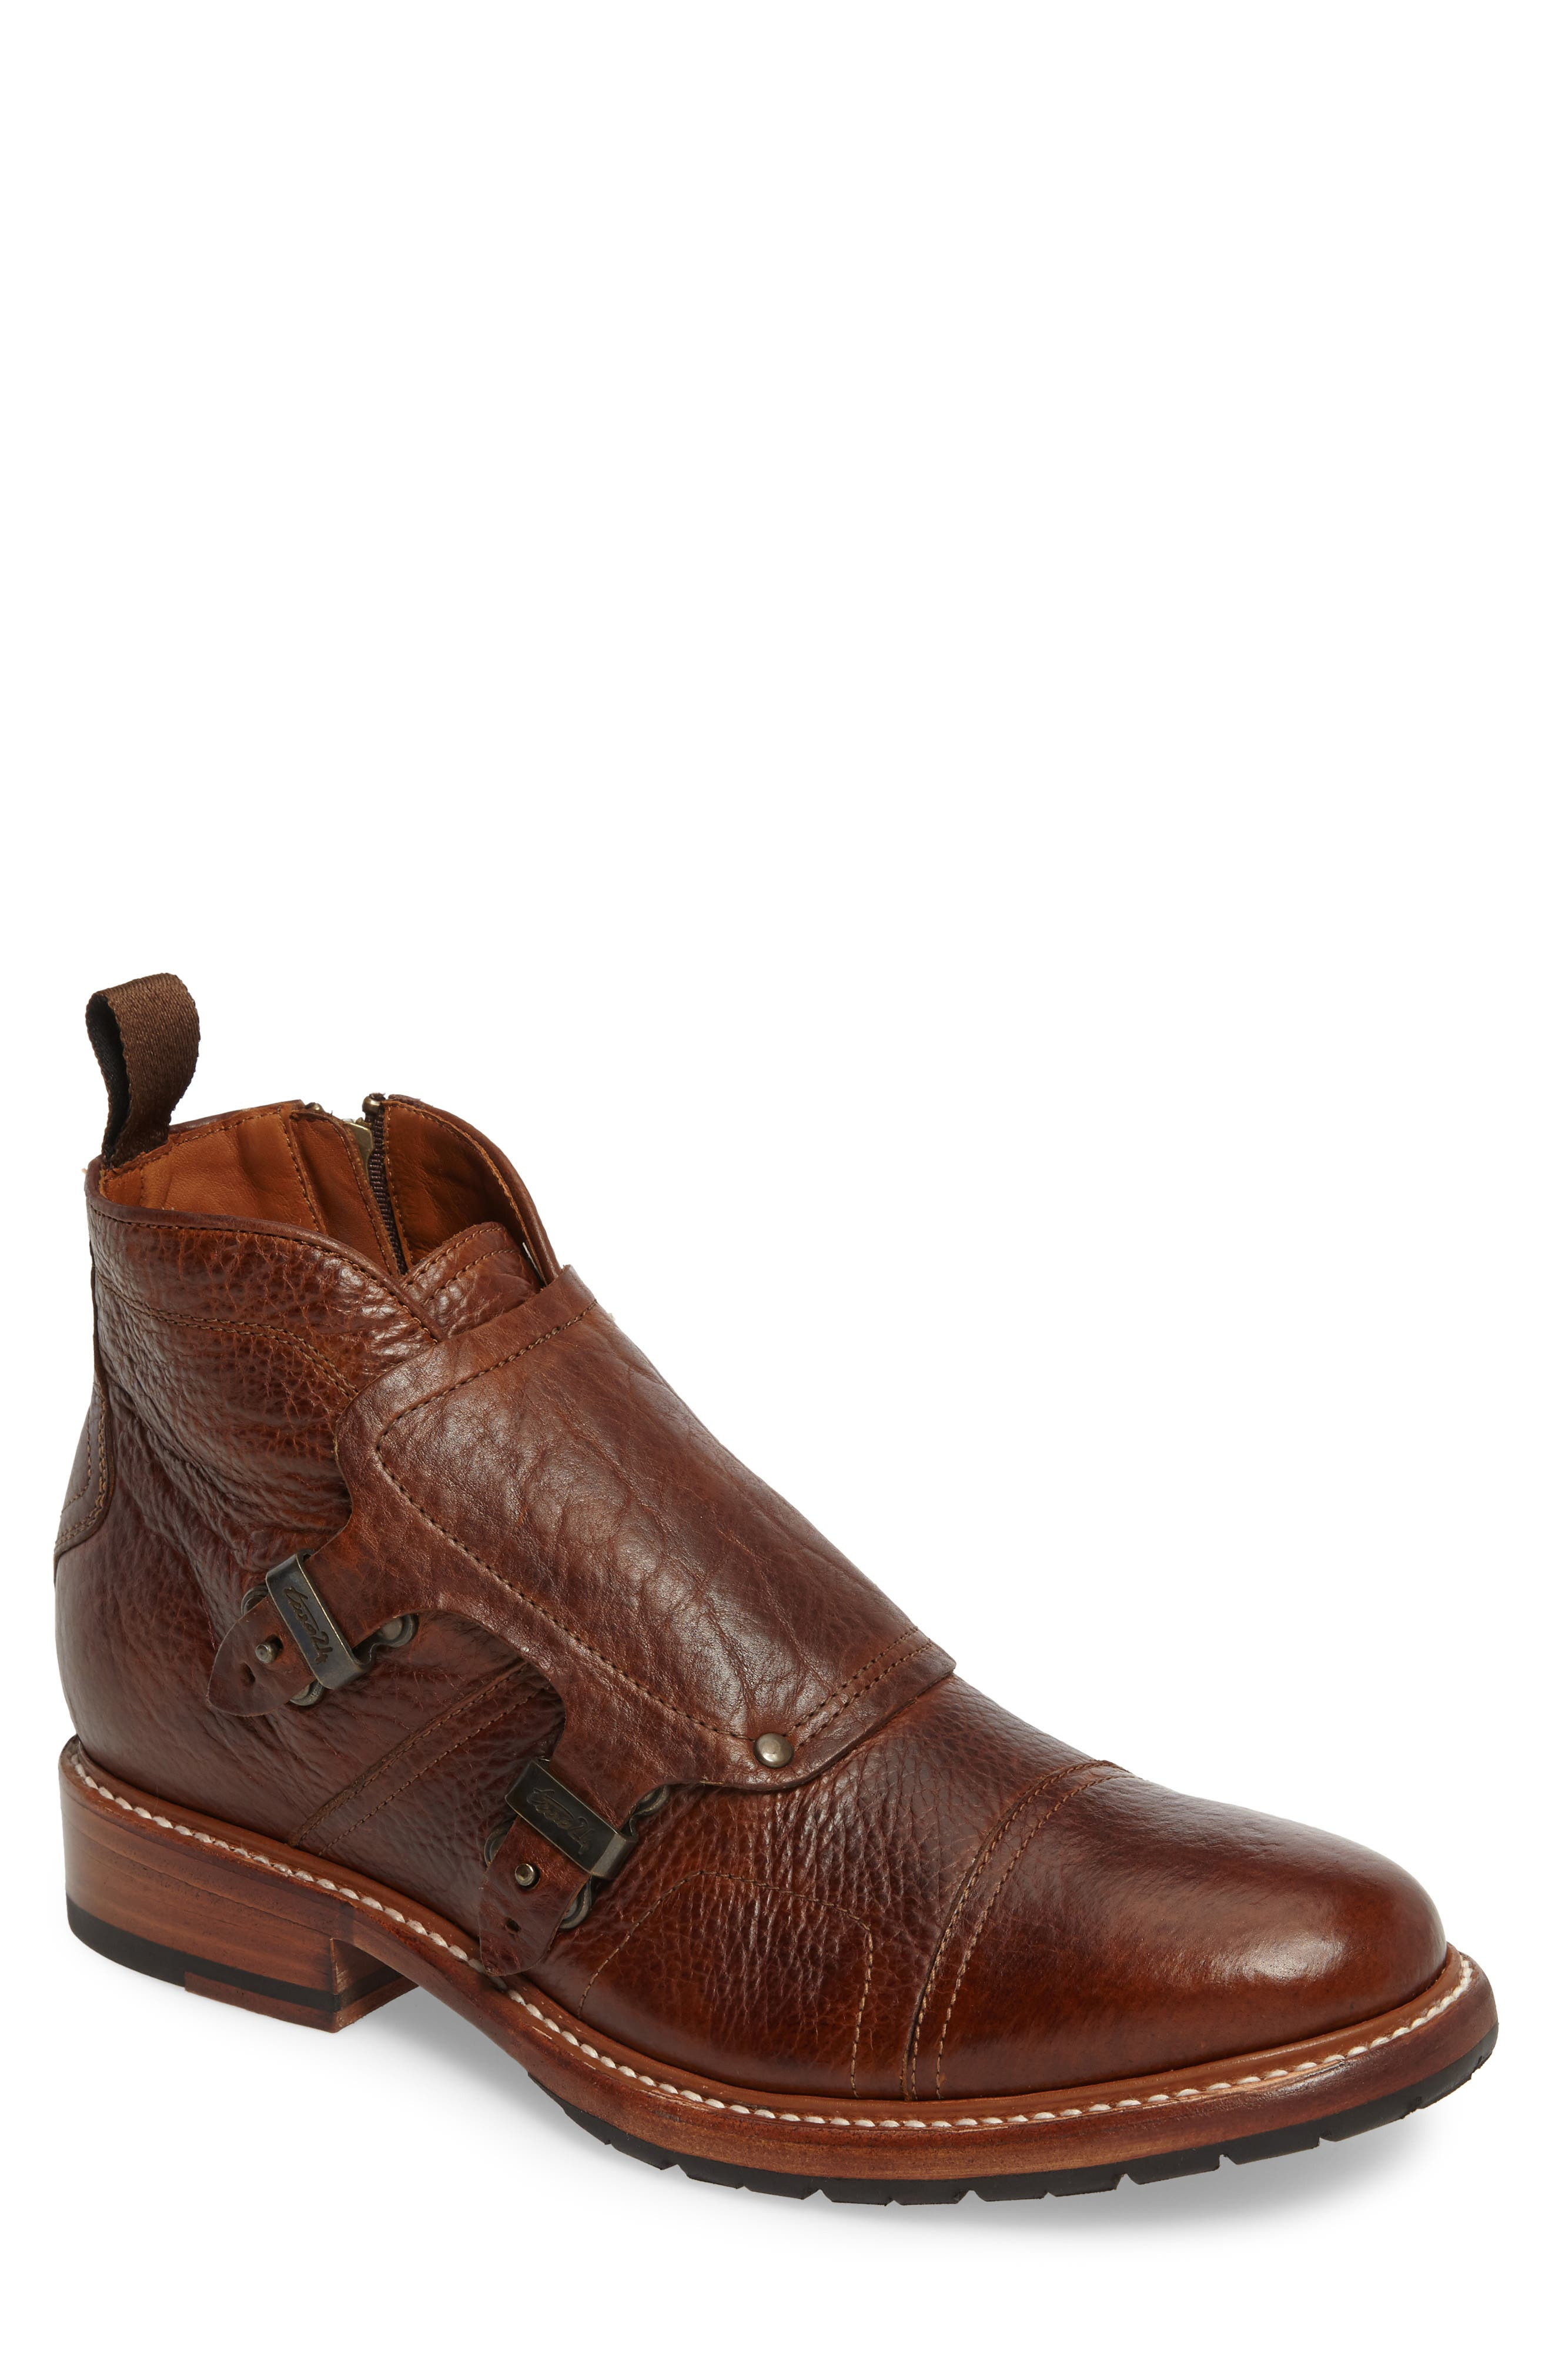 Montclair Zip Boot,                         Main,                         color, Brown Leather